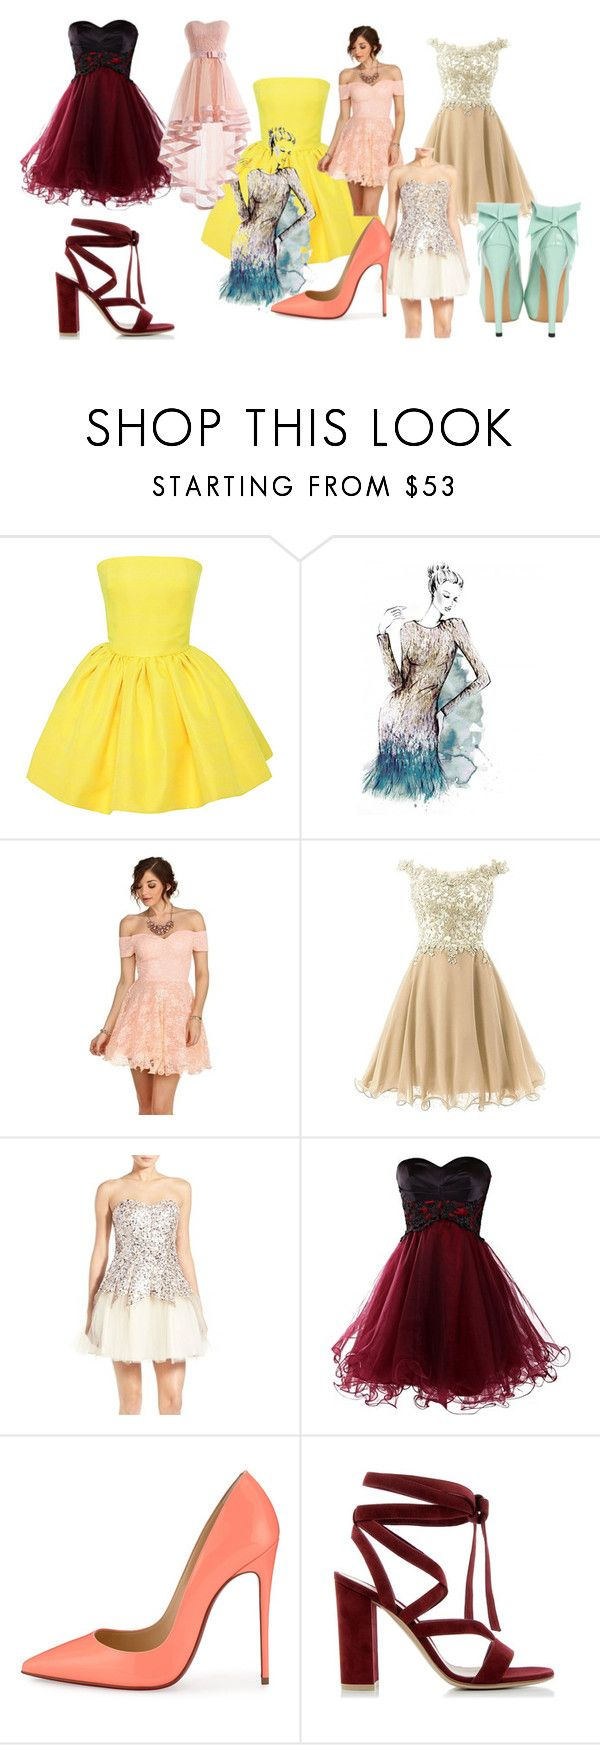 """""""dress"""" by rismasansella on Polyvore featuring Martin Grant, Matthew Williamson, Steppin' Out, Christian Louboutin, Gianvito Rossi, women's clothing, women, female, woman and misses"""